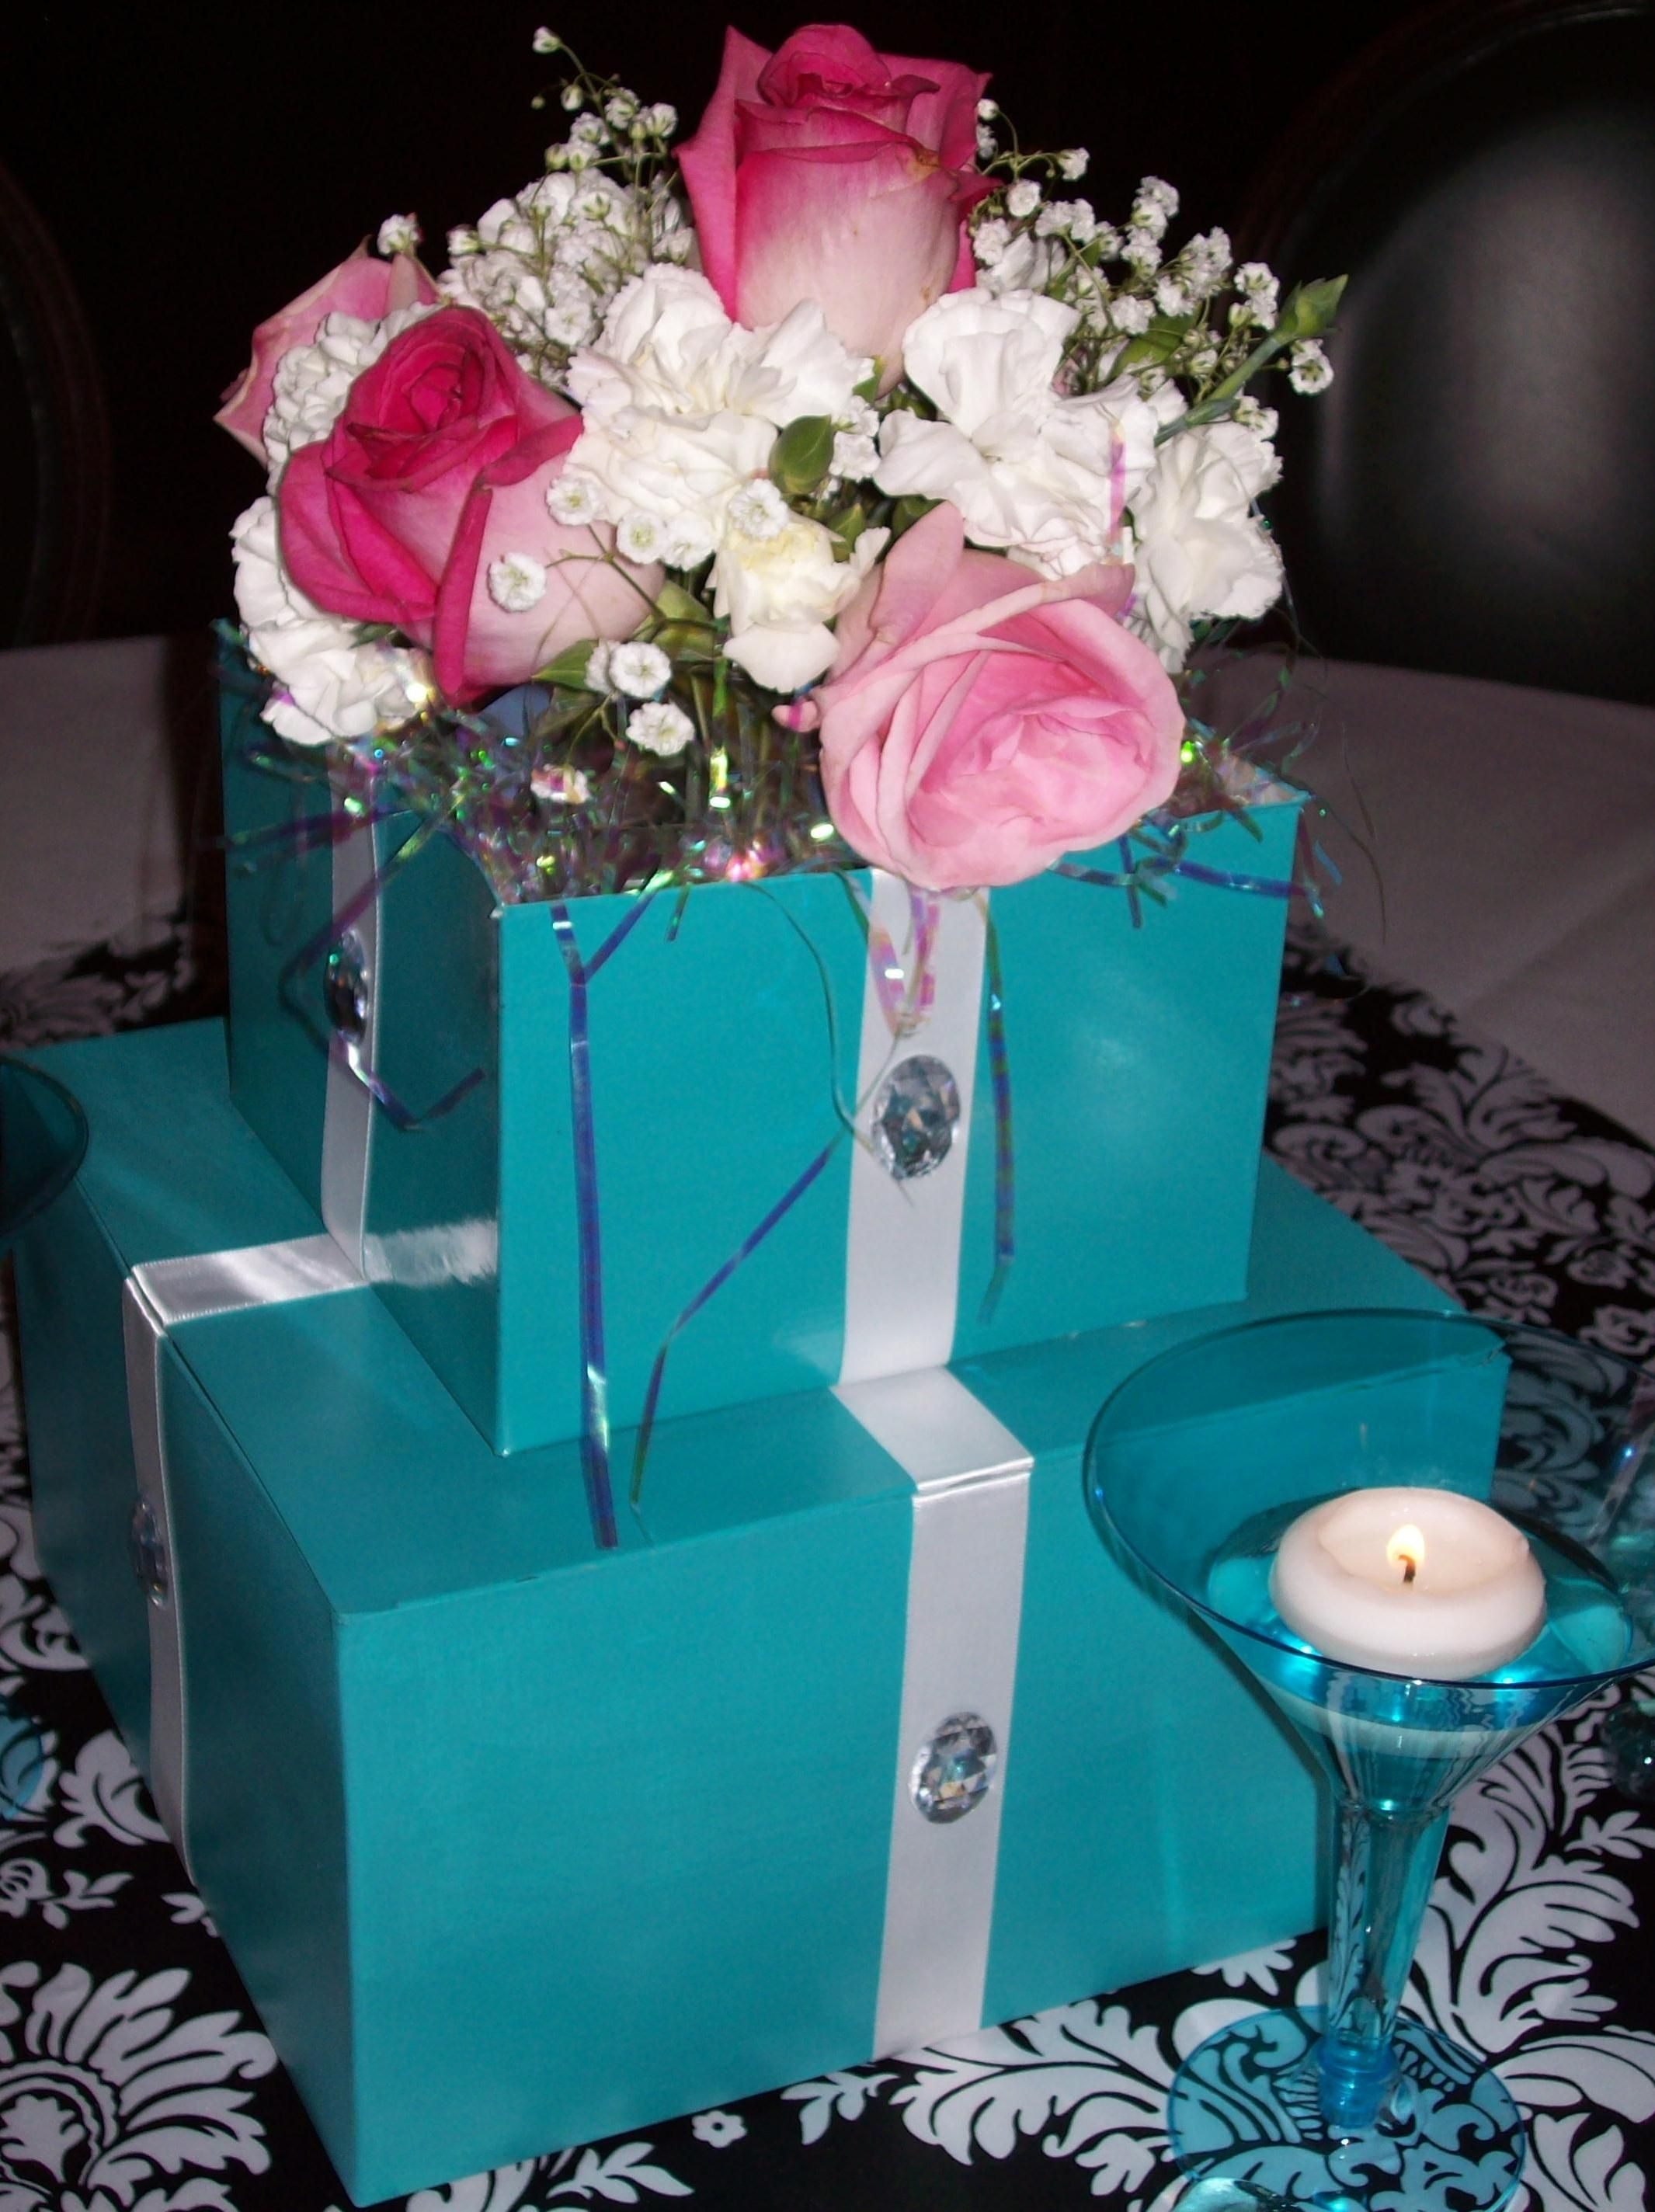 Diy Breakfast At Tiffanys Centerpiece For My Moms Birthday Painted Cake Boxes White Ribbo Breakfast At Tiffanys Party Ideas Flower Cake Breakfast At Tiffanys